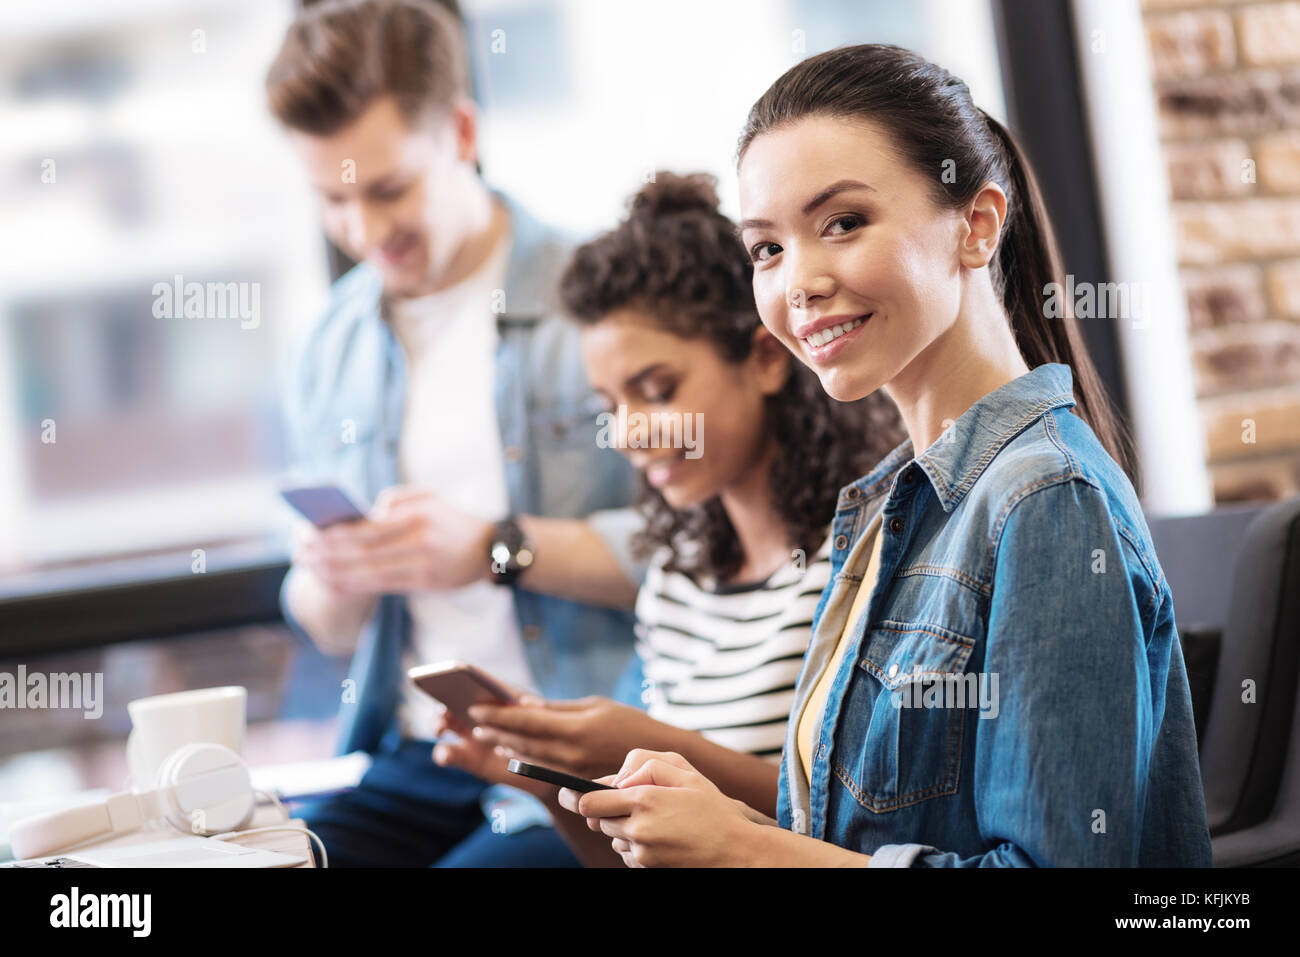 Smiling girl sitting and holding her phone - Stock Image